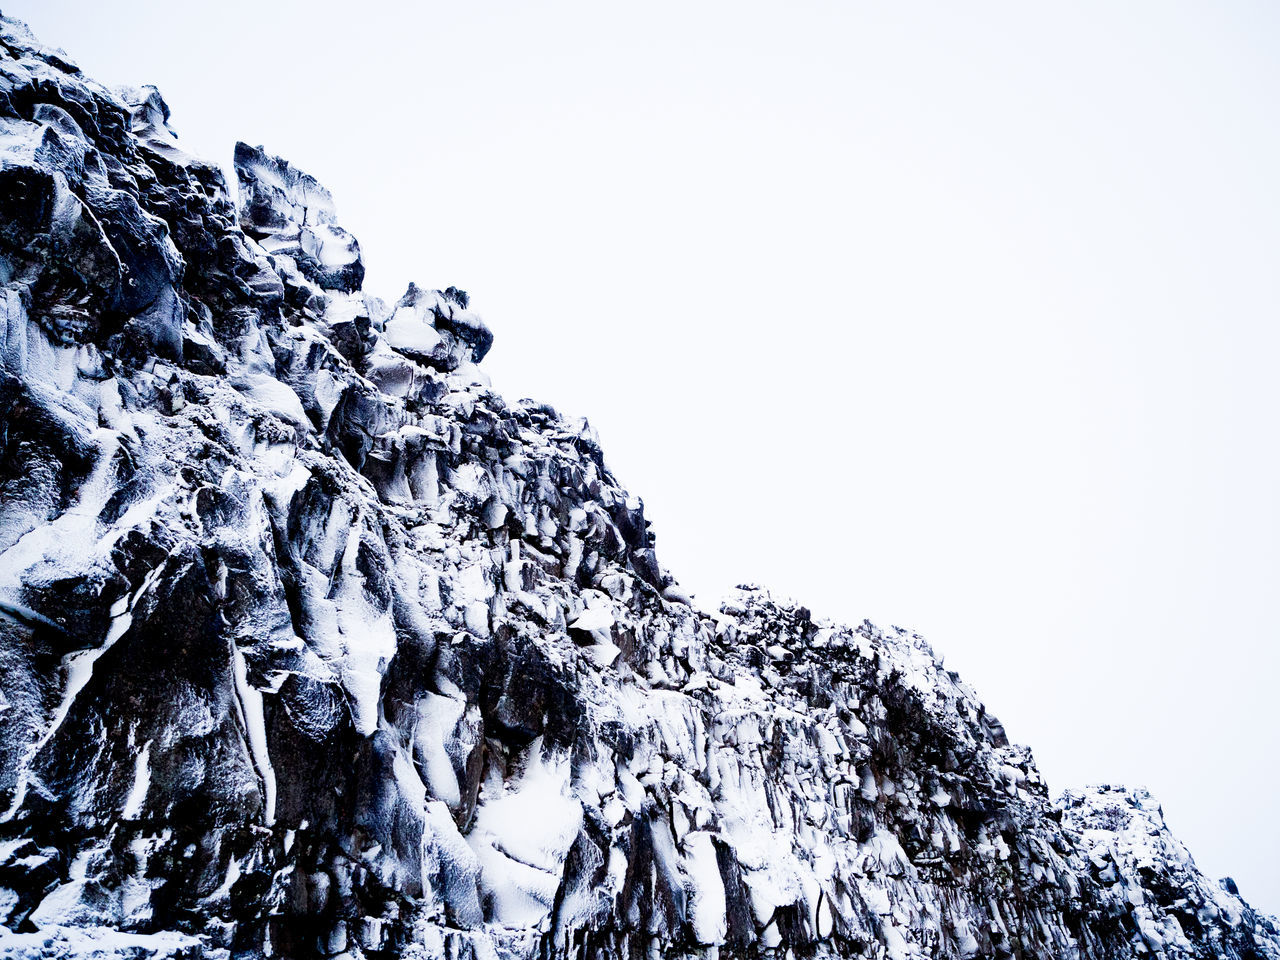 Beauty In Nature Cliffs Iceland Mountains Nature Nature_collection Snow Spectacular Winter